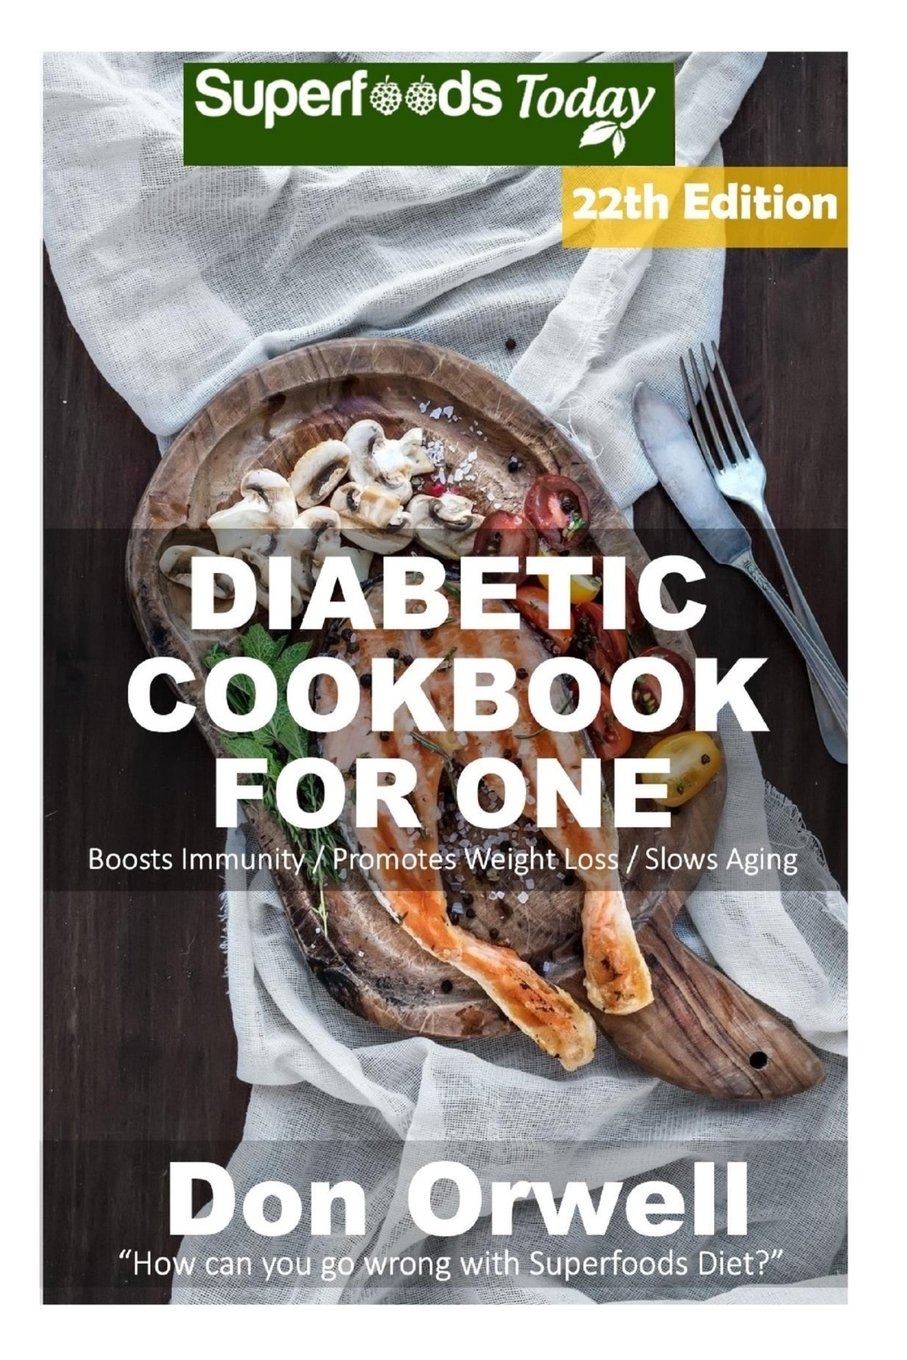 Diabetic Cookbook For One: Over 320 Diabetes Type-2 Quick & Easy Gluten Free Low Cholesterol Whole Foods Recipes full of Antioxidants & Phytochemicals ... Weight Loss Transformation (Volume 15) pdf